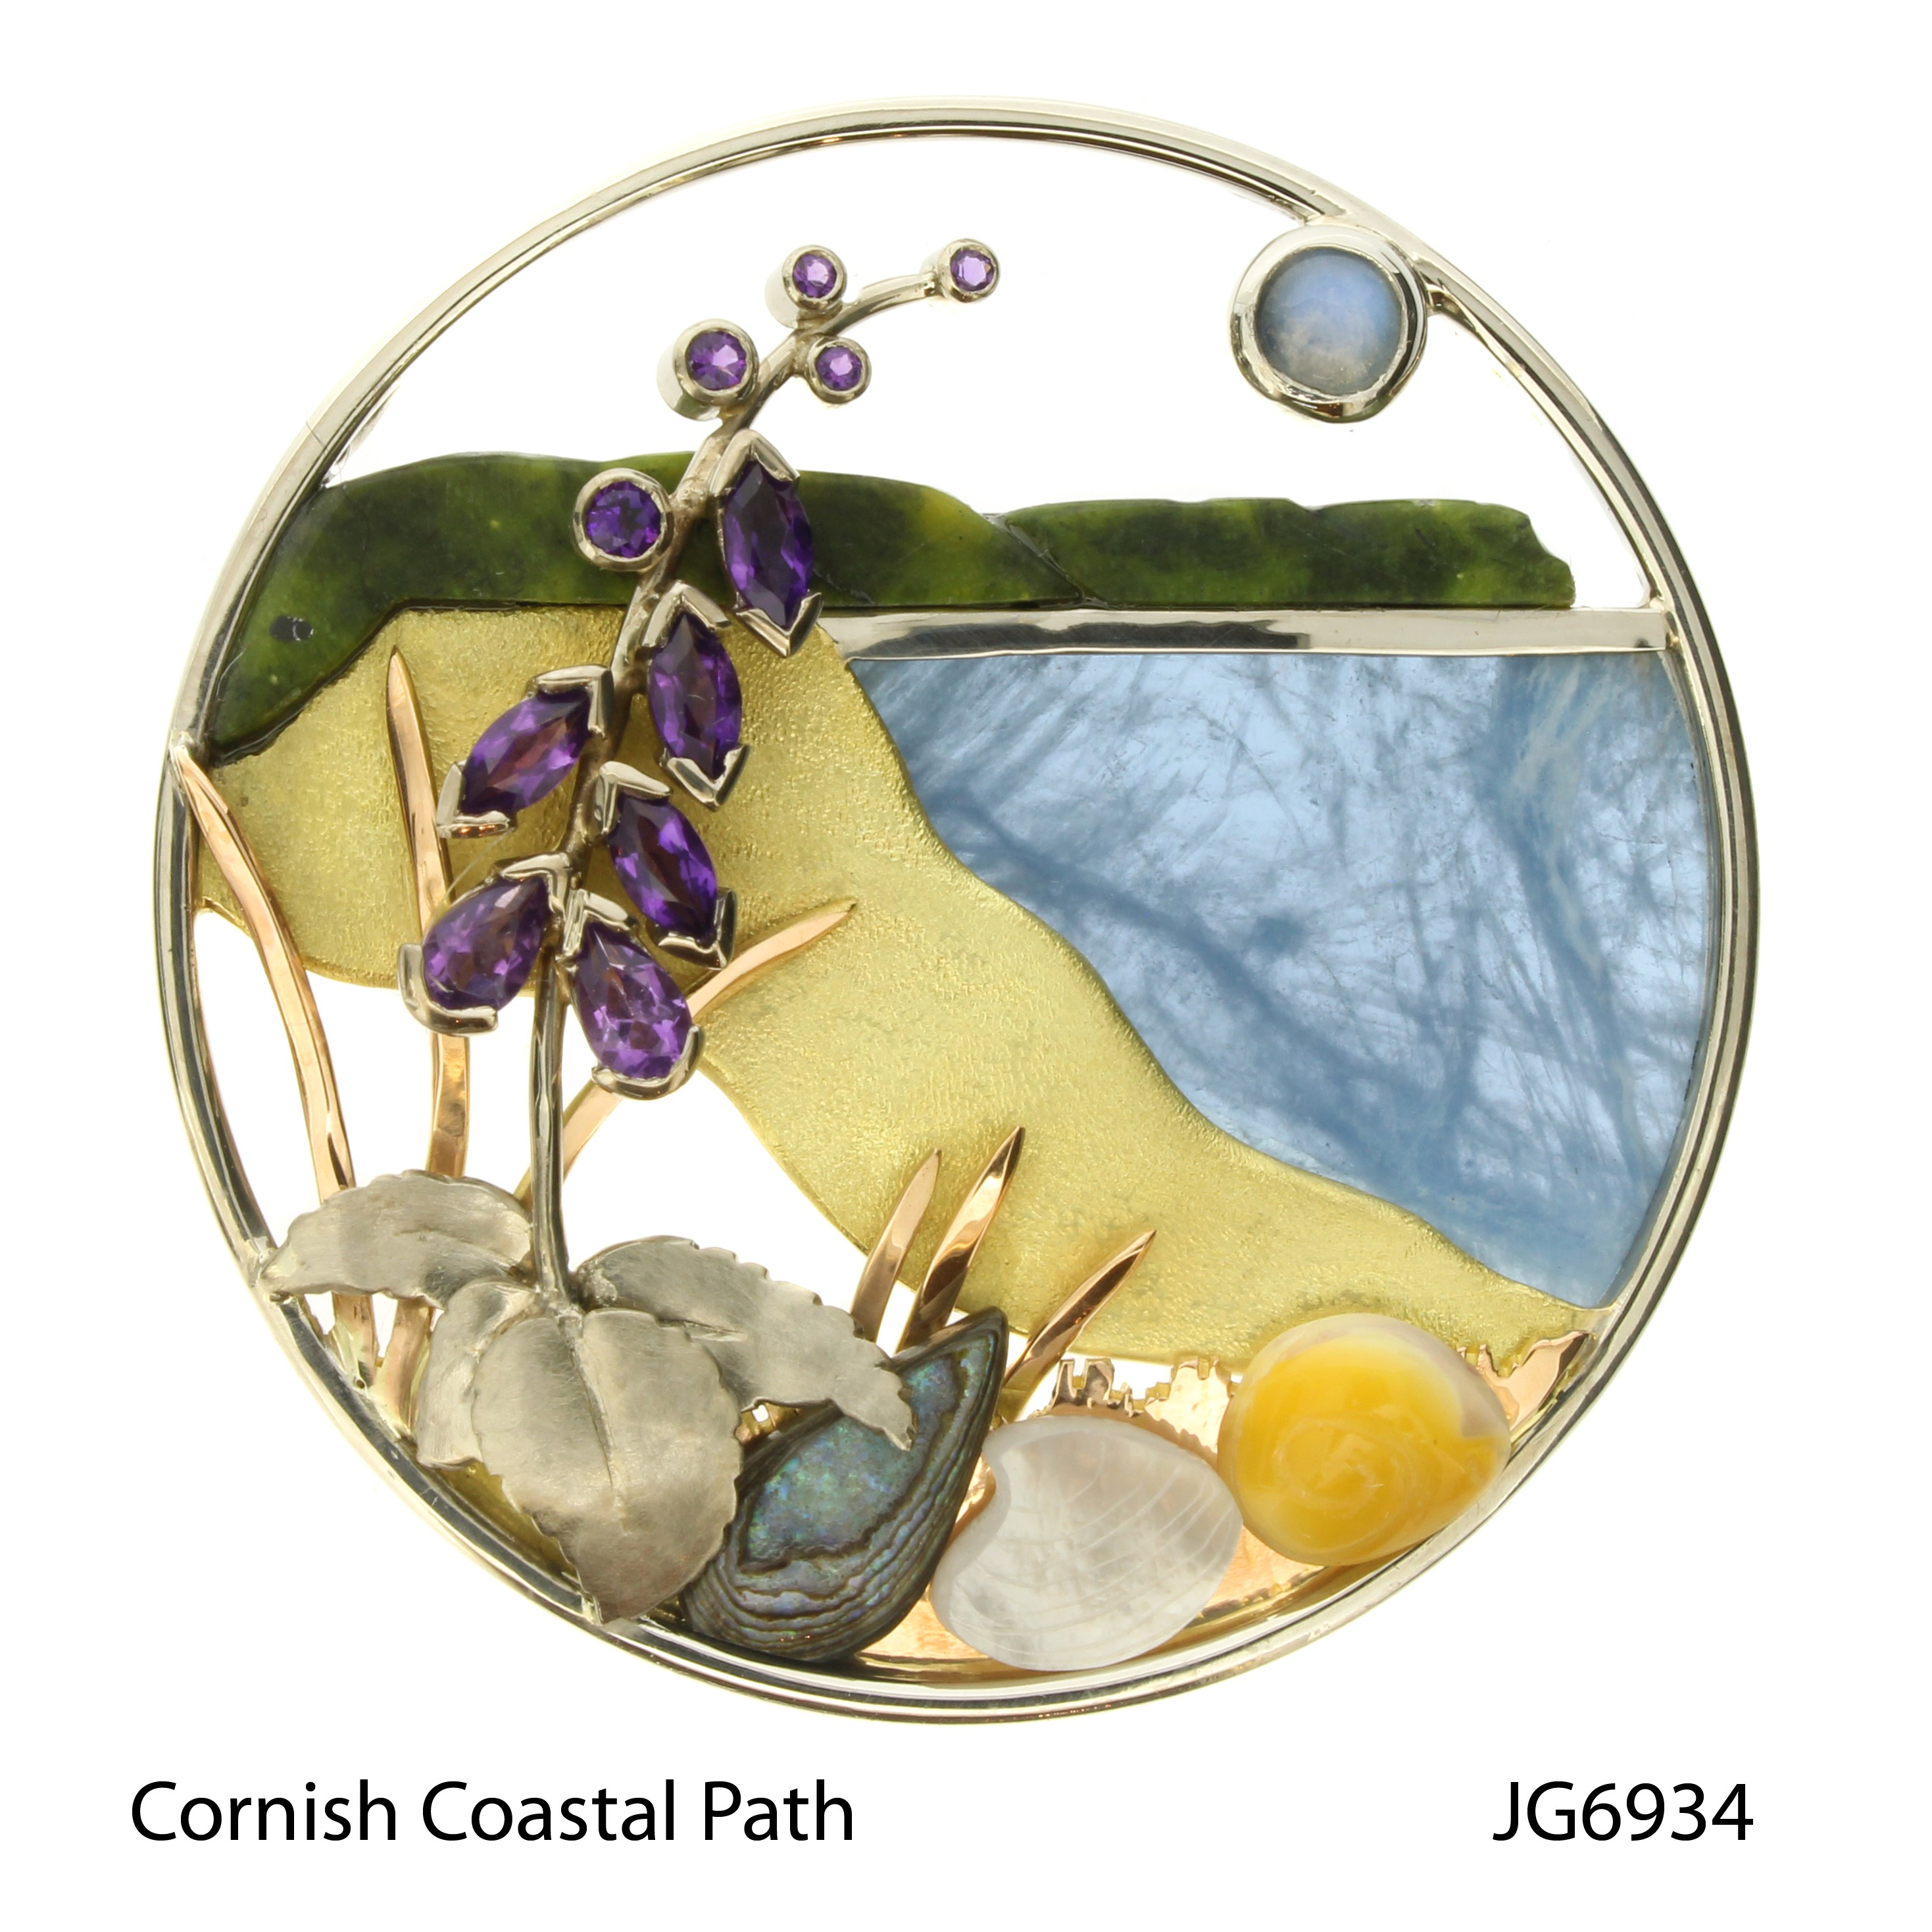 Joanne Gowan. Cornish Coastal Path